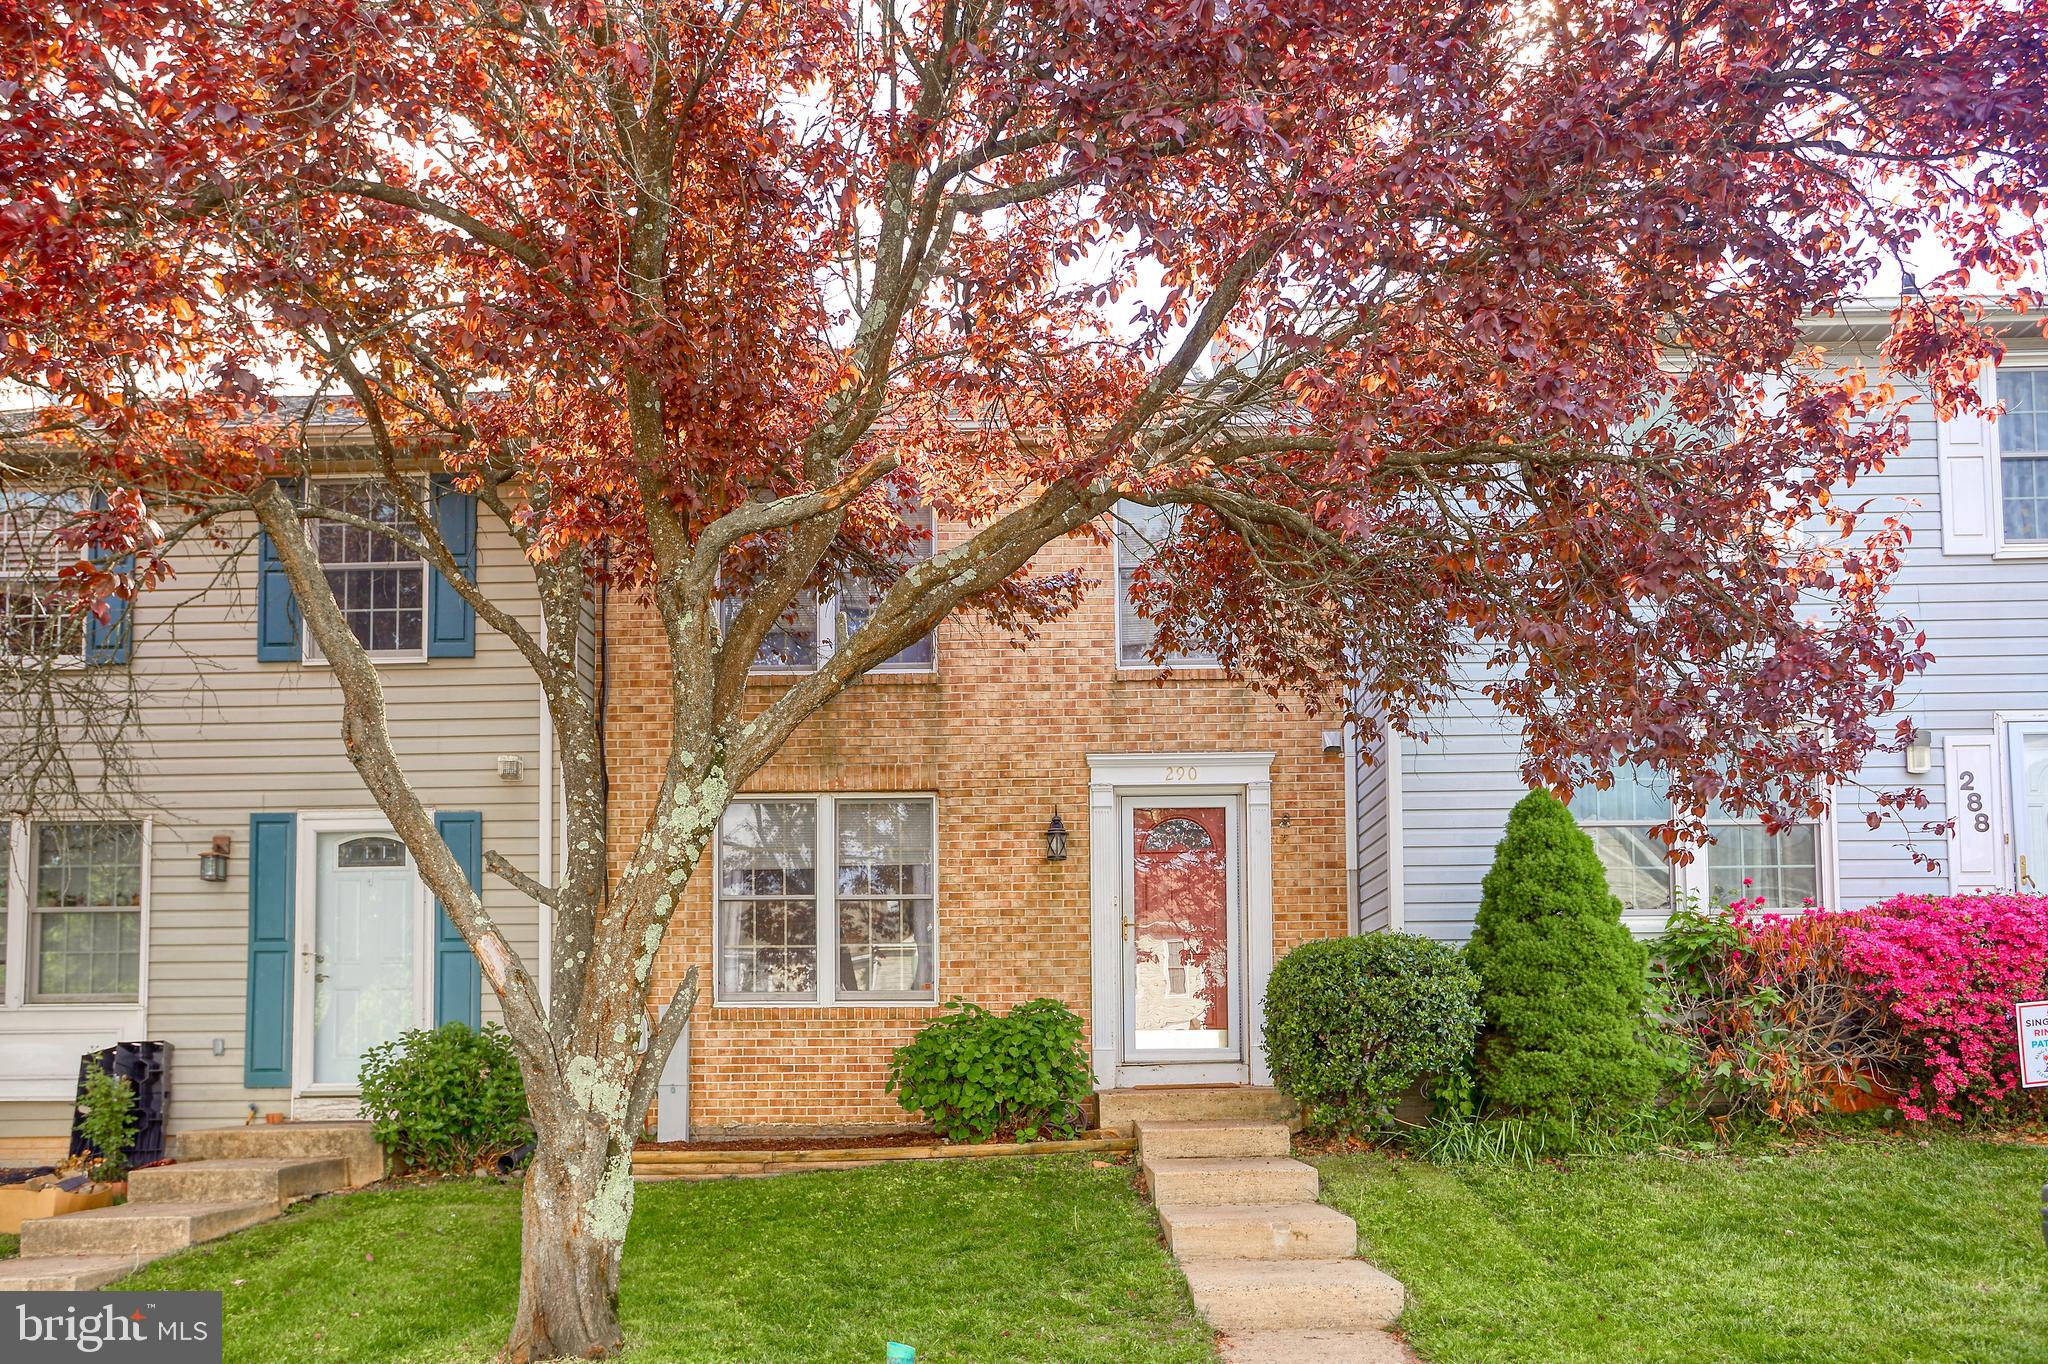 Come and check out this brick home in a perfect location right in between Abingdon and Bel Air right